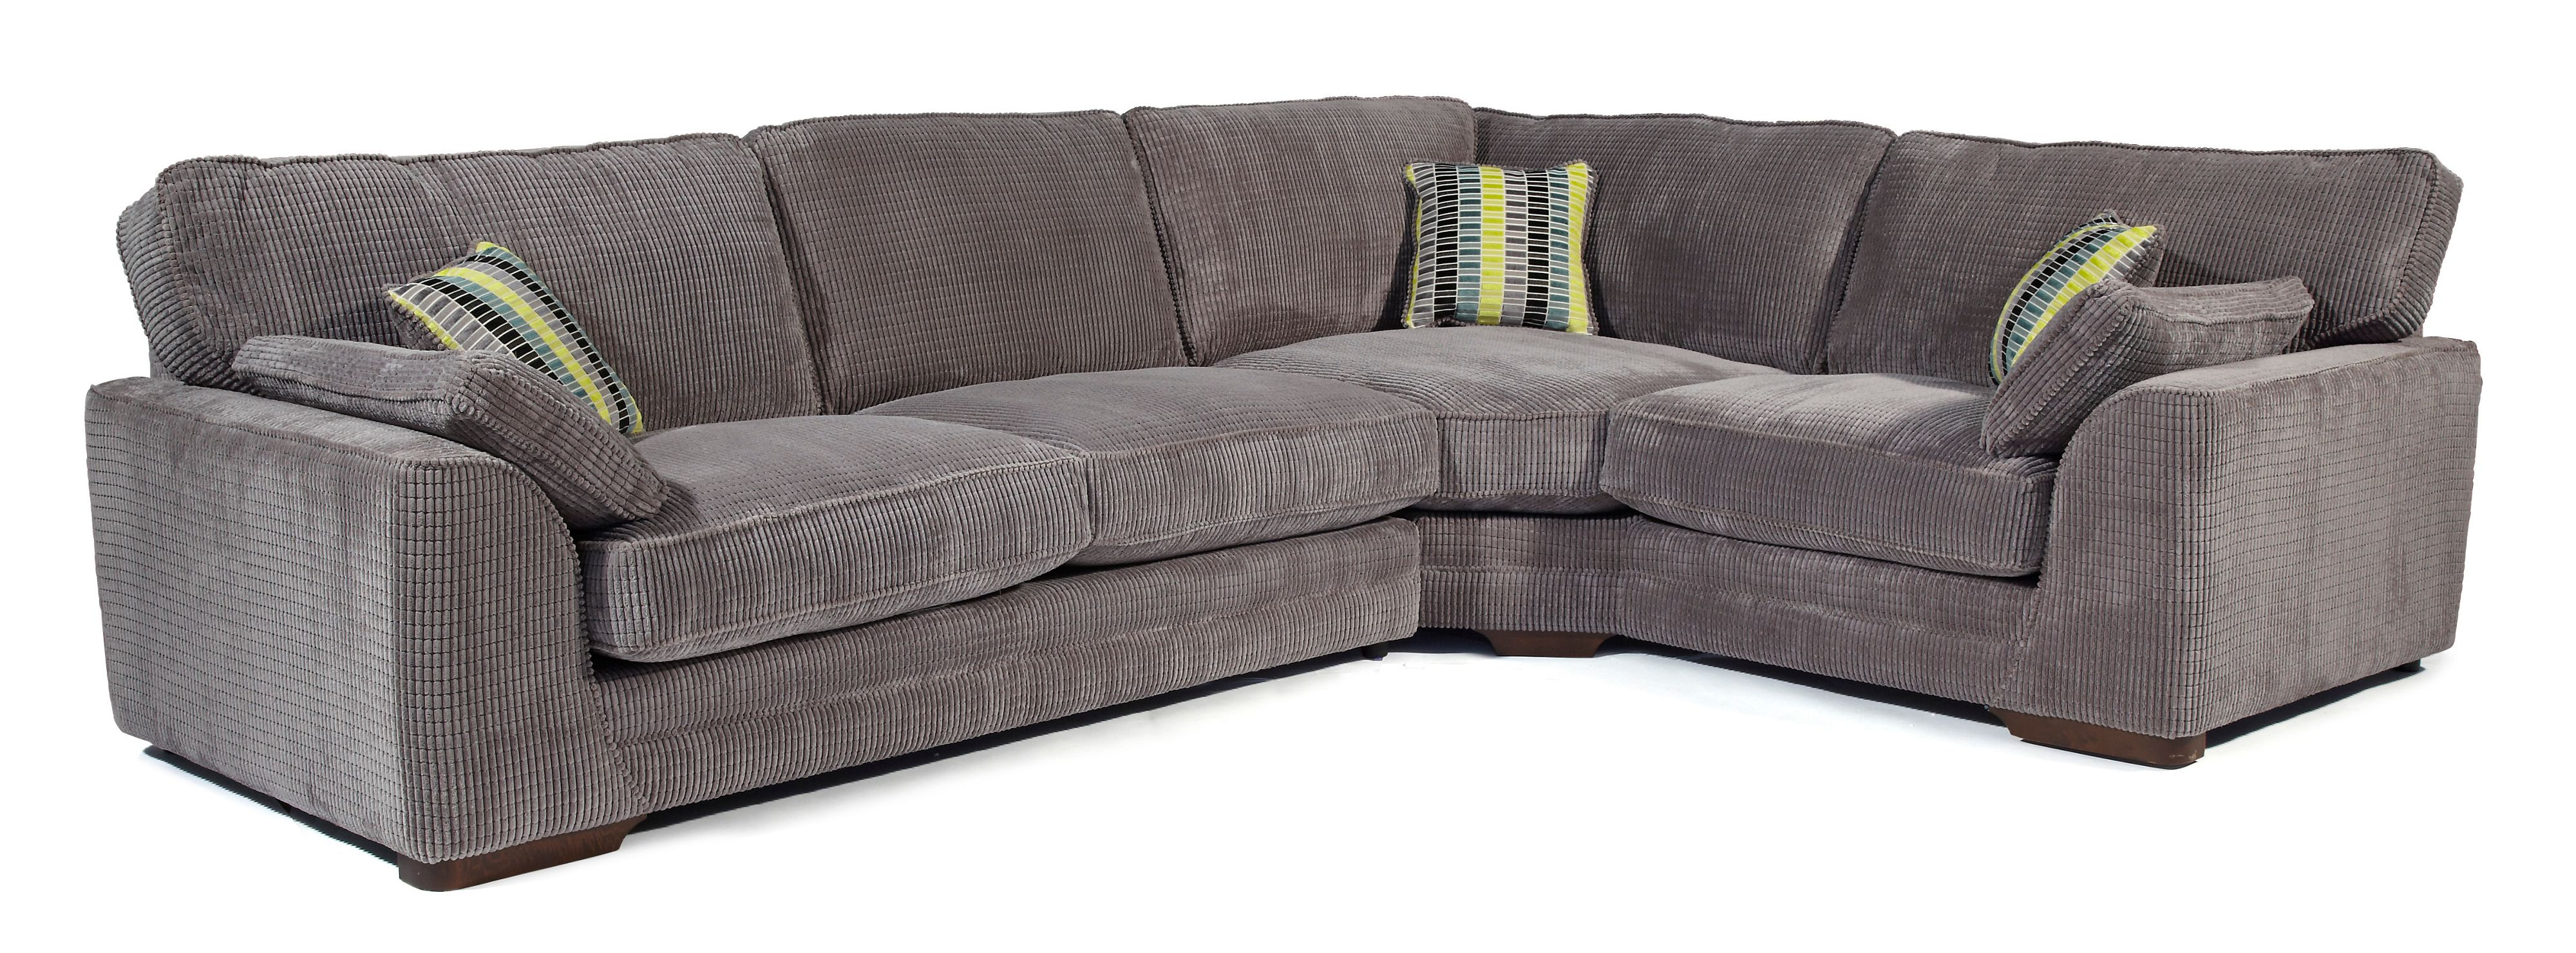 Linea Cooper 3 And 1 Corner Sofa House of Fraser